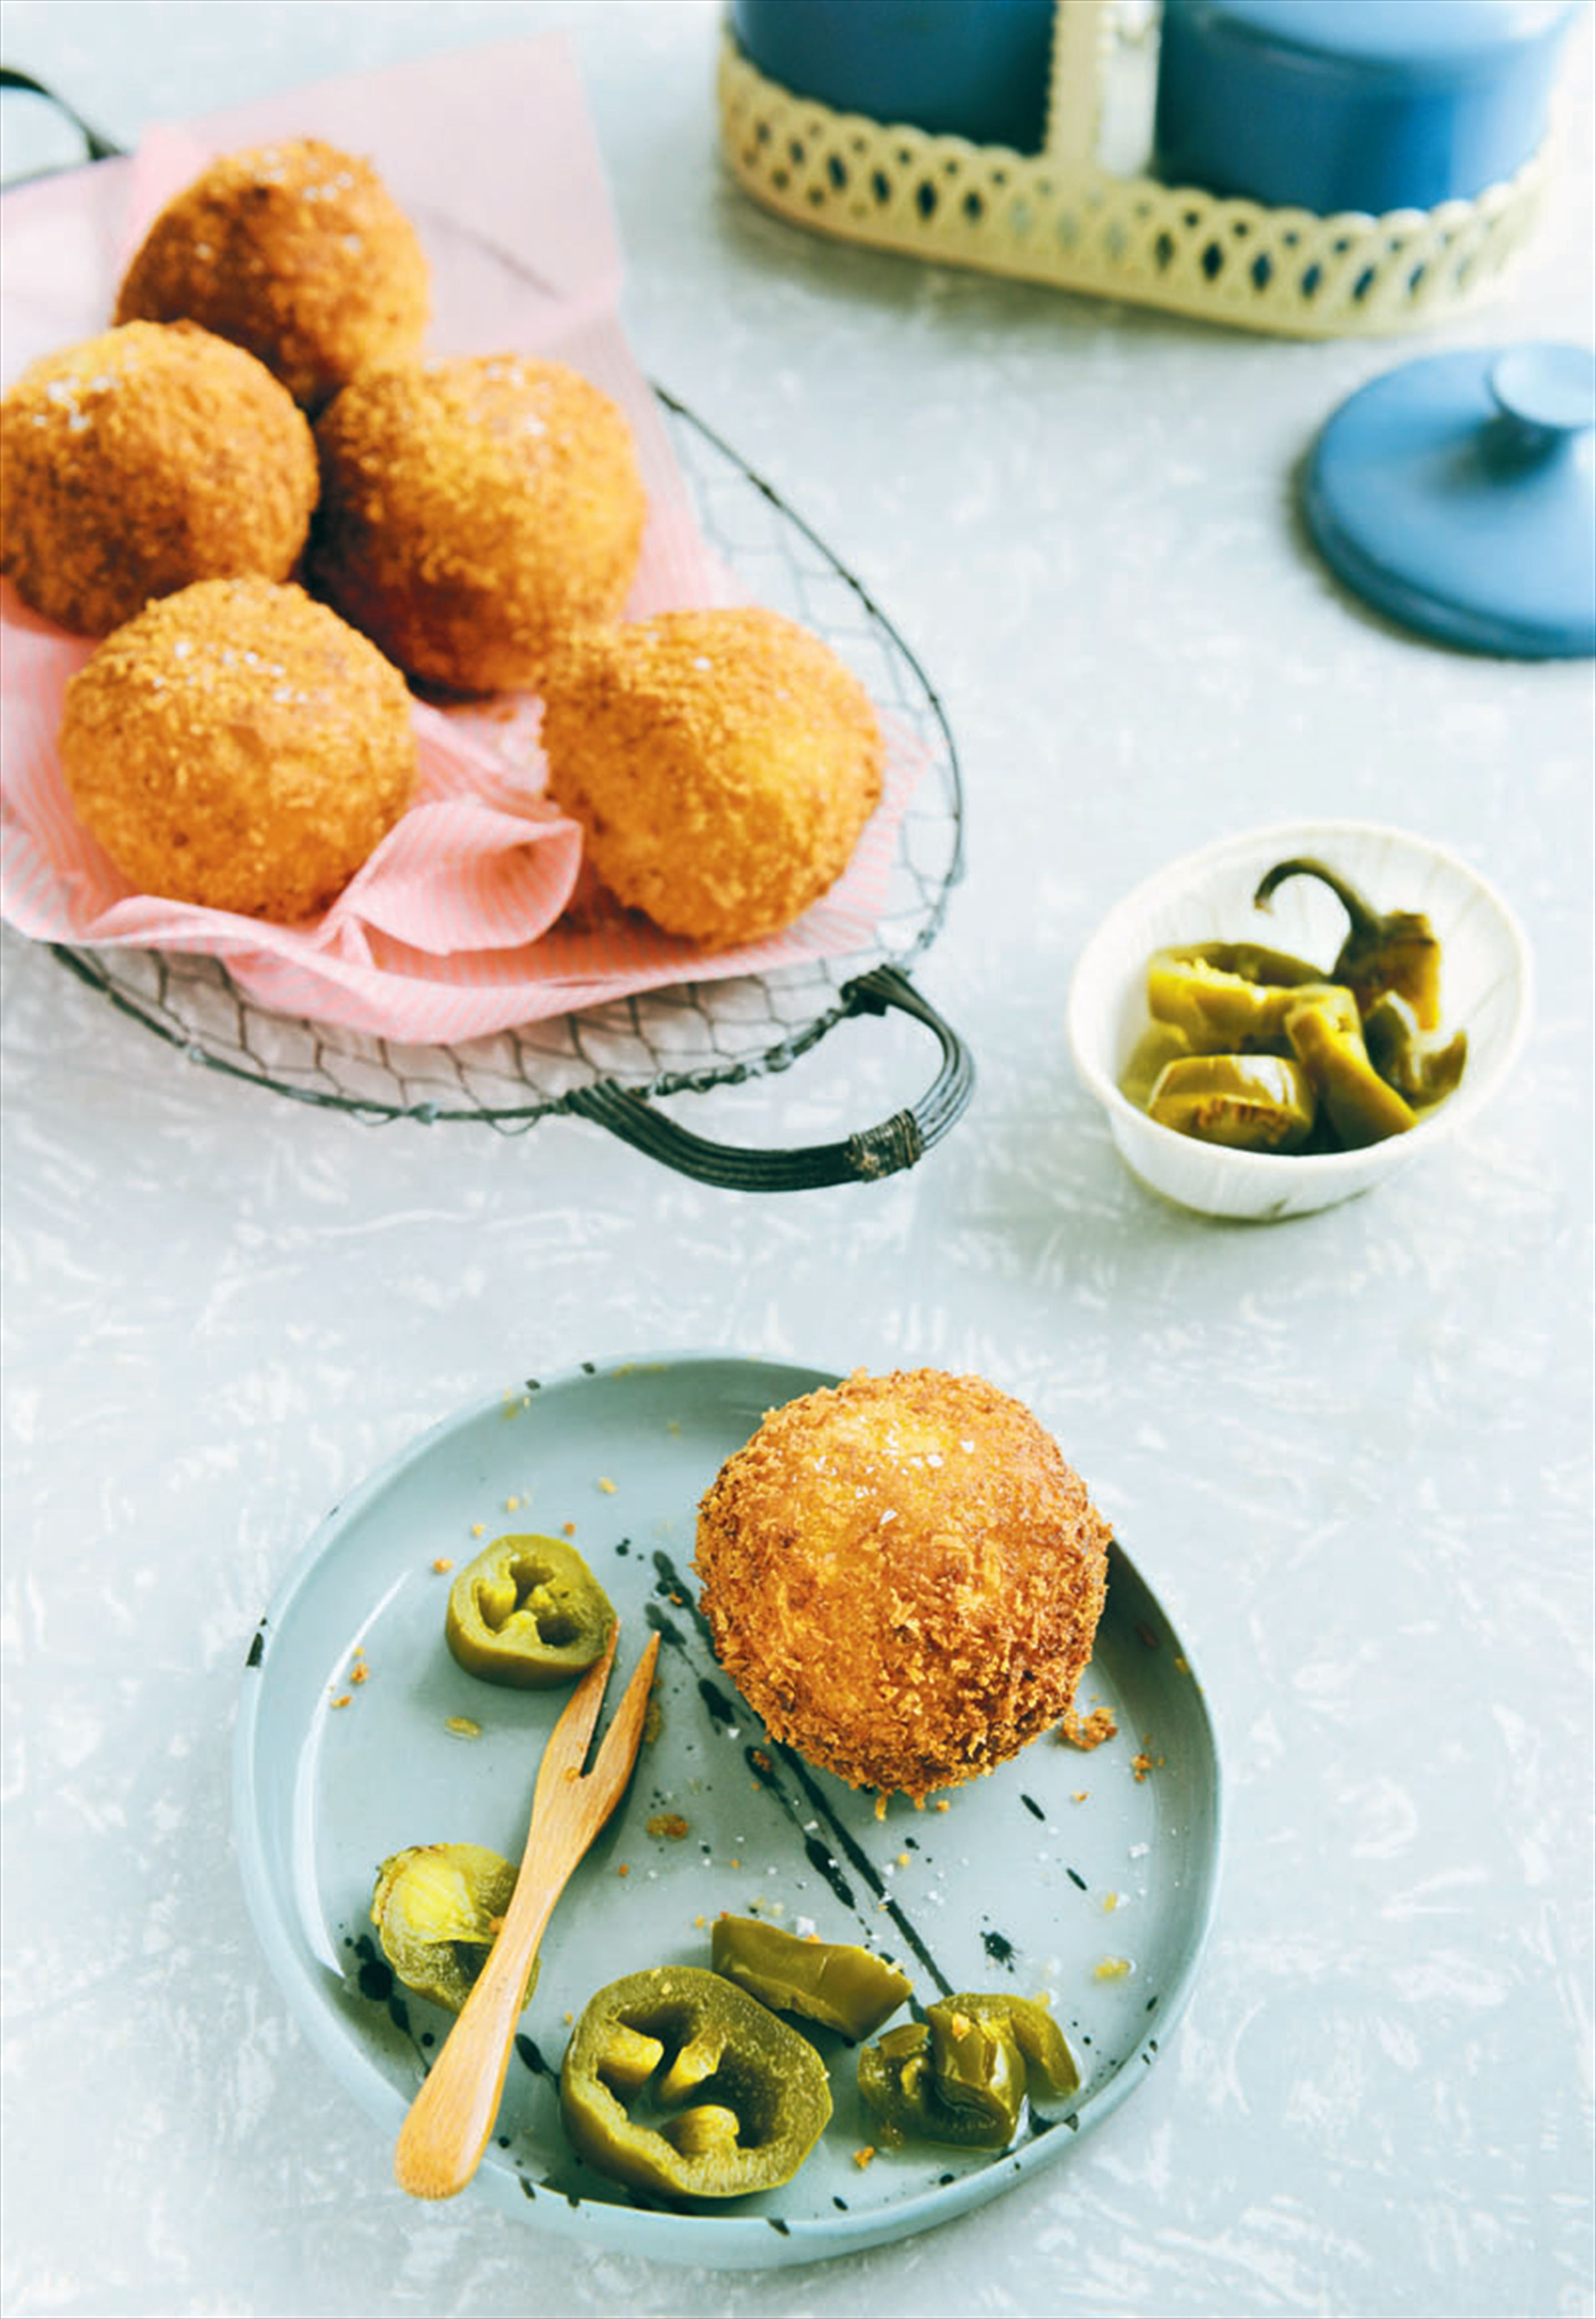 Chilli cheese croquettes